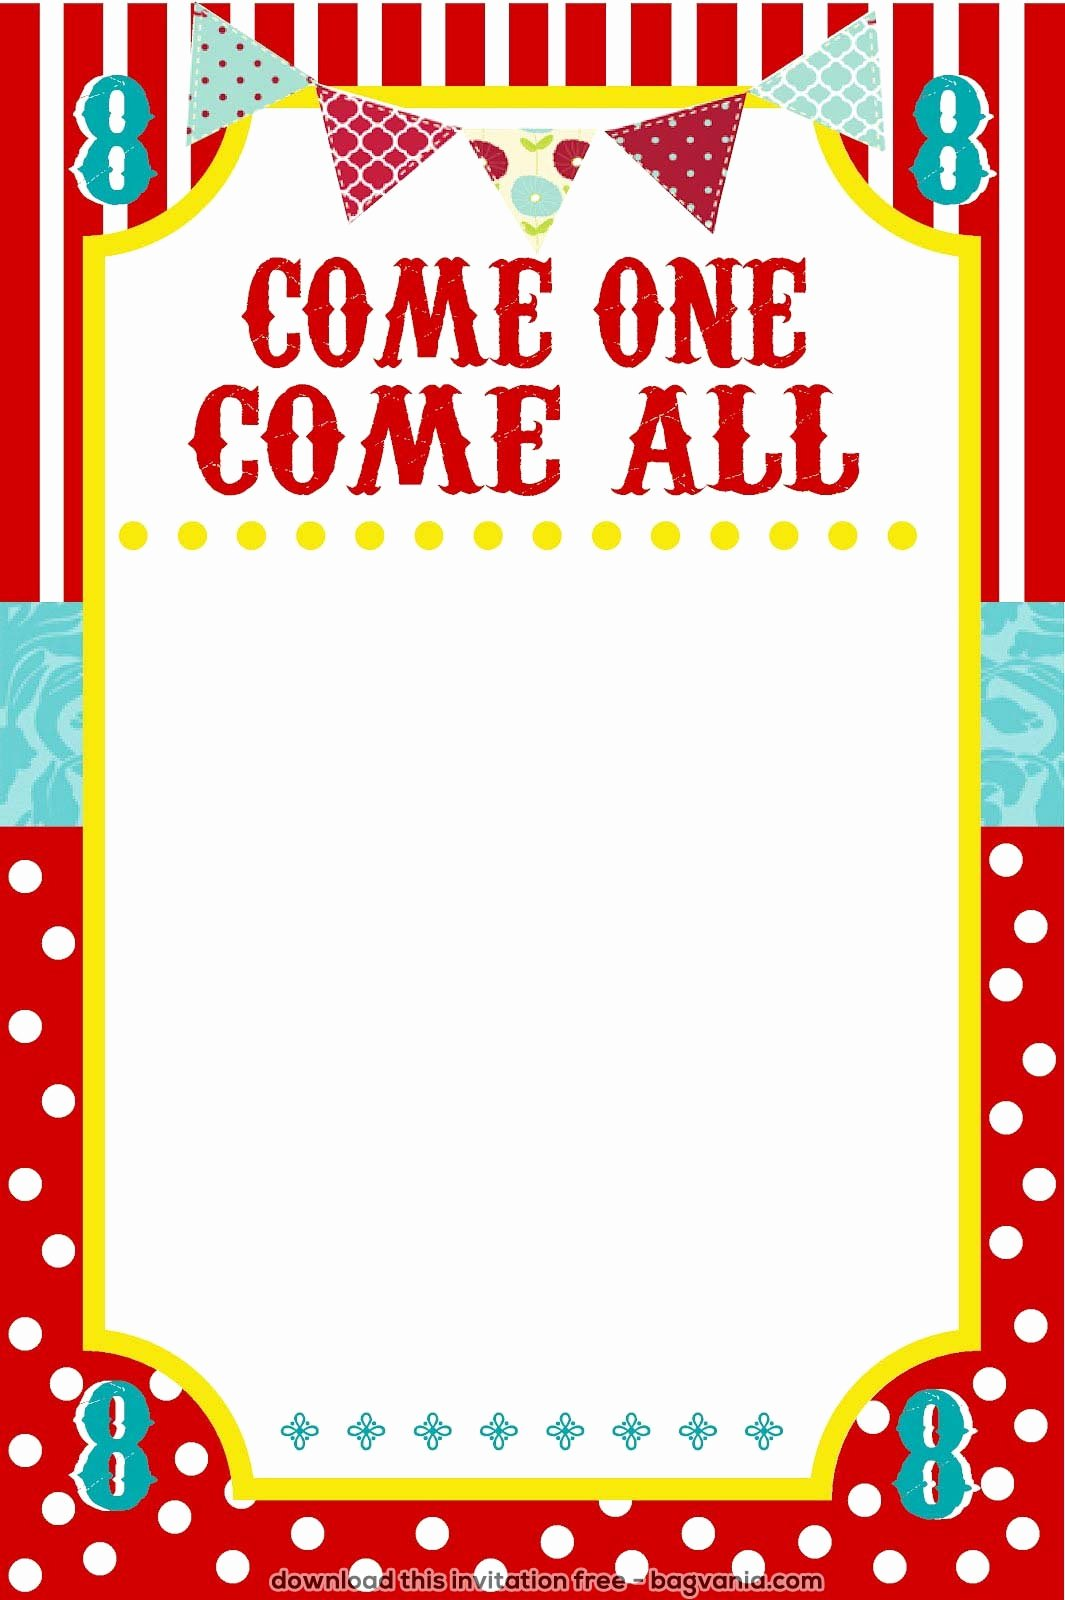 Carnival theme Party Invitations Lovely Free Carnival Birthday Invitations – Free Printable